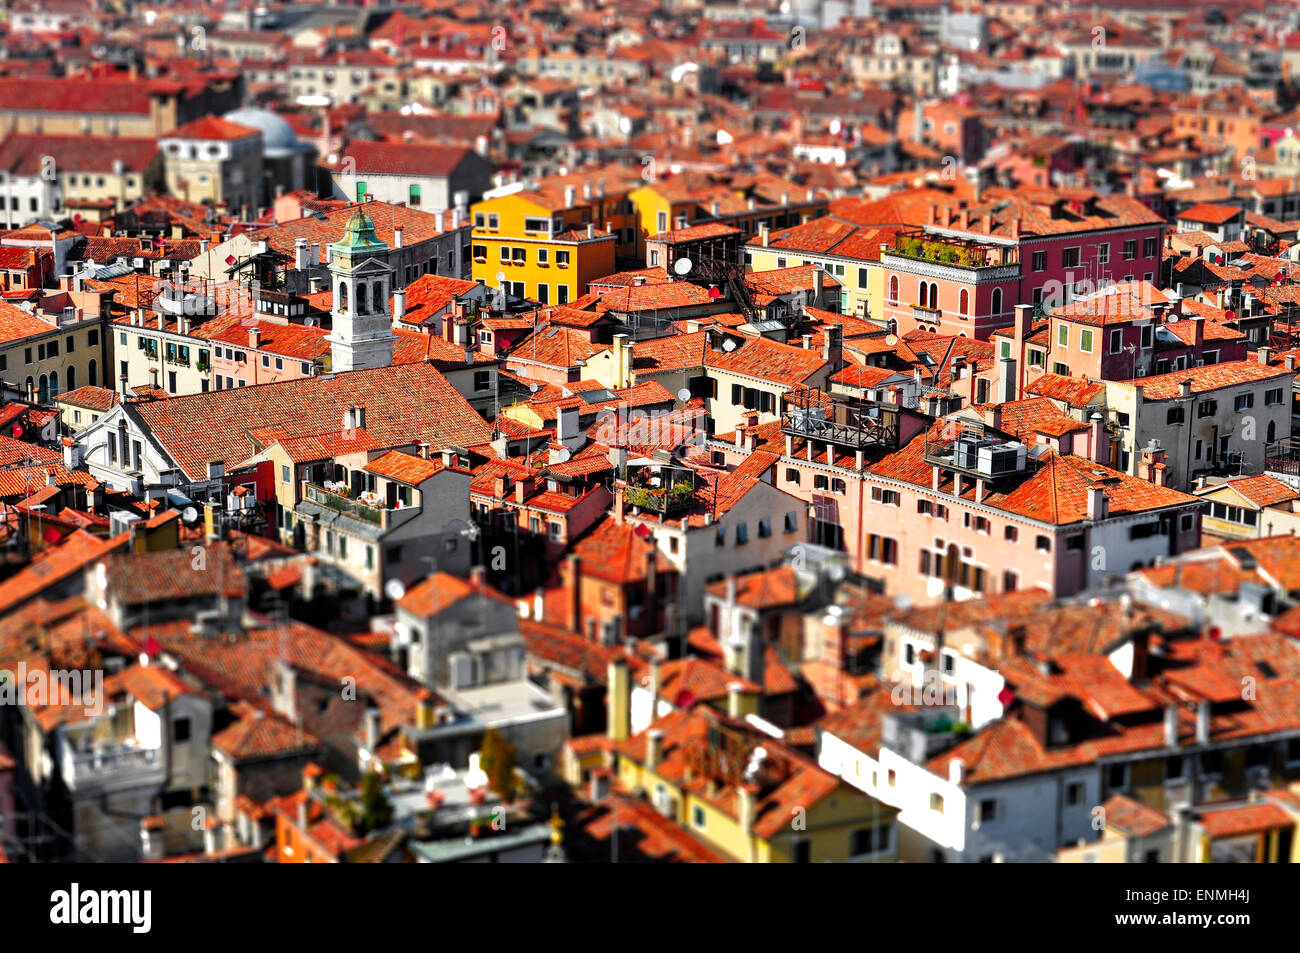 a view of Venice roofs, in Italy, with tilt shift lens effect - Stock Image